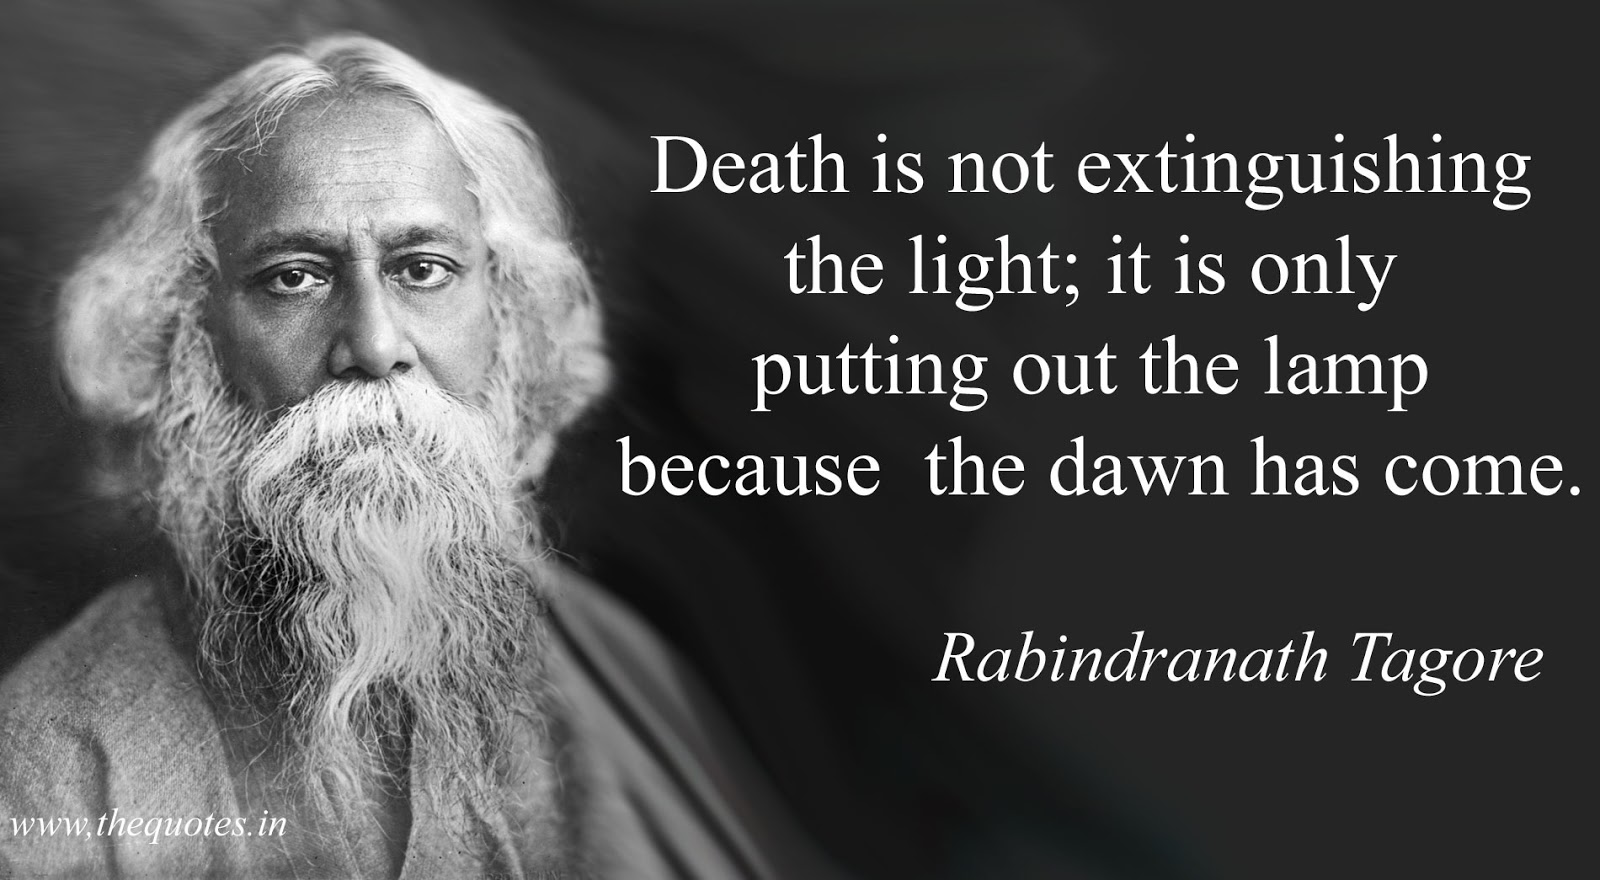 analysis of rabindranath tagore as a The nobel prize in literature 1913 was awarded to rabindranath tagore because of his profoundly sensitive, fresh and beautiful verse, by which, with consummate skill, he has made his poetic thought, expressed in his own english words, a part of the literature of the west.